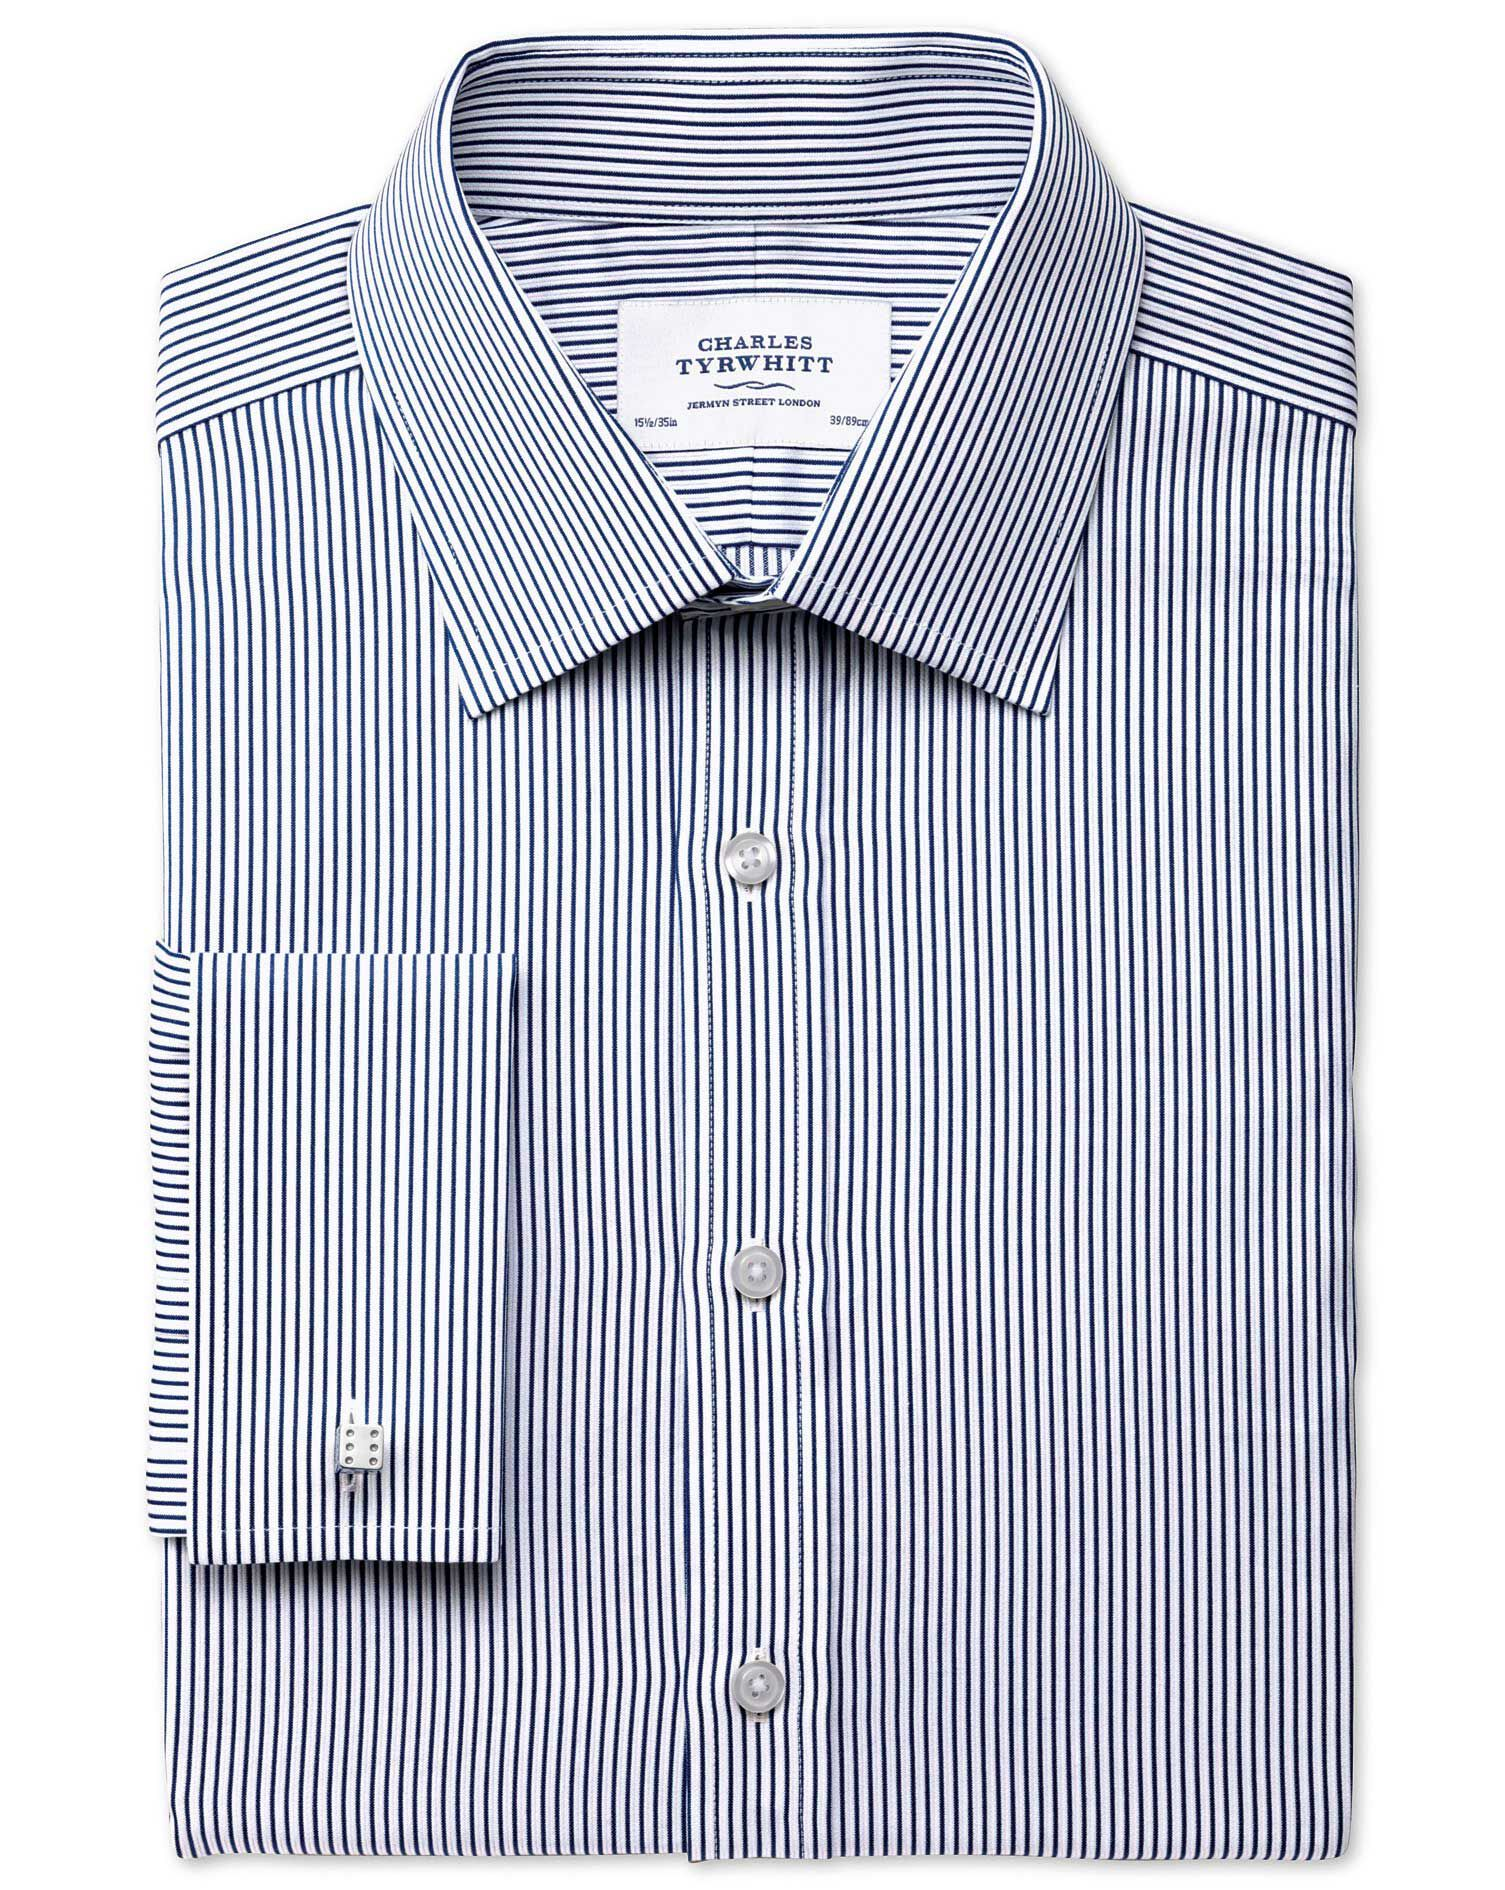 Slim Fit Raised Stripe Navy Cotton Formal Shirt Double Cuff Size 15.5/36 by Charles Tyrwhitt